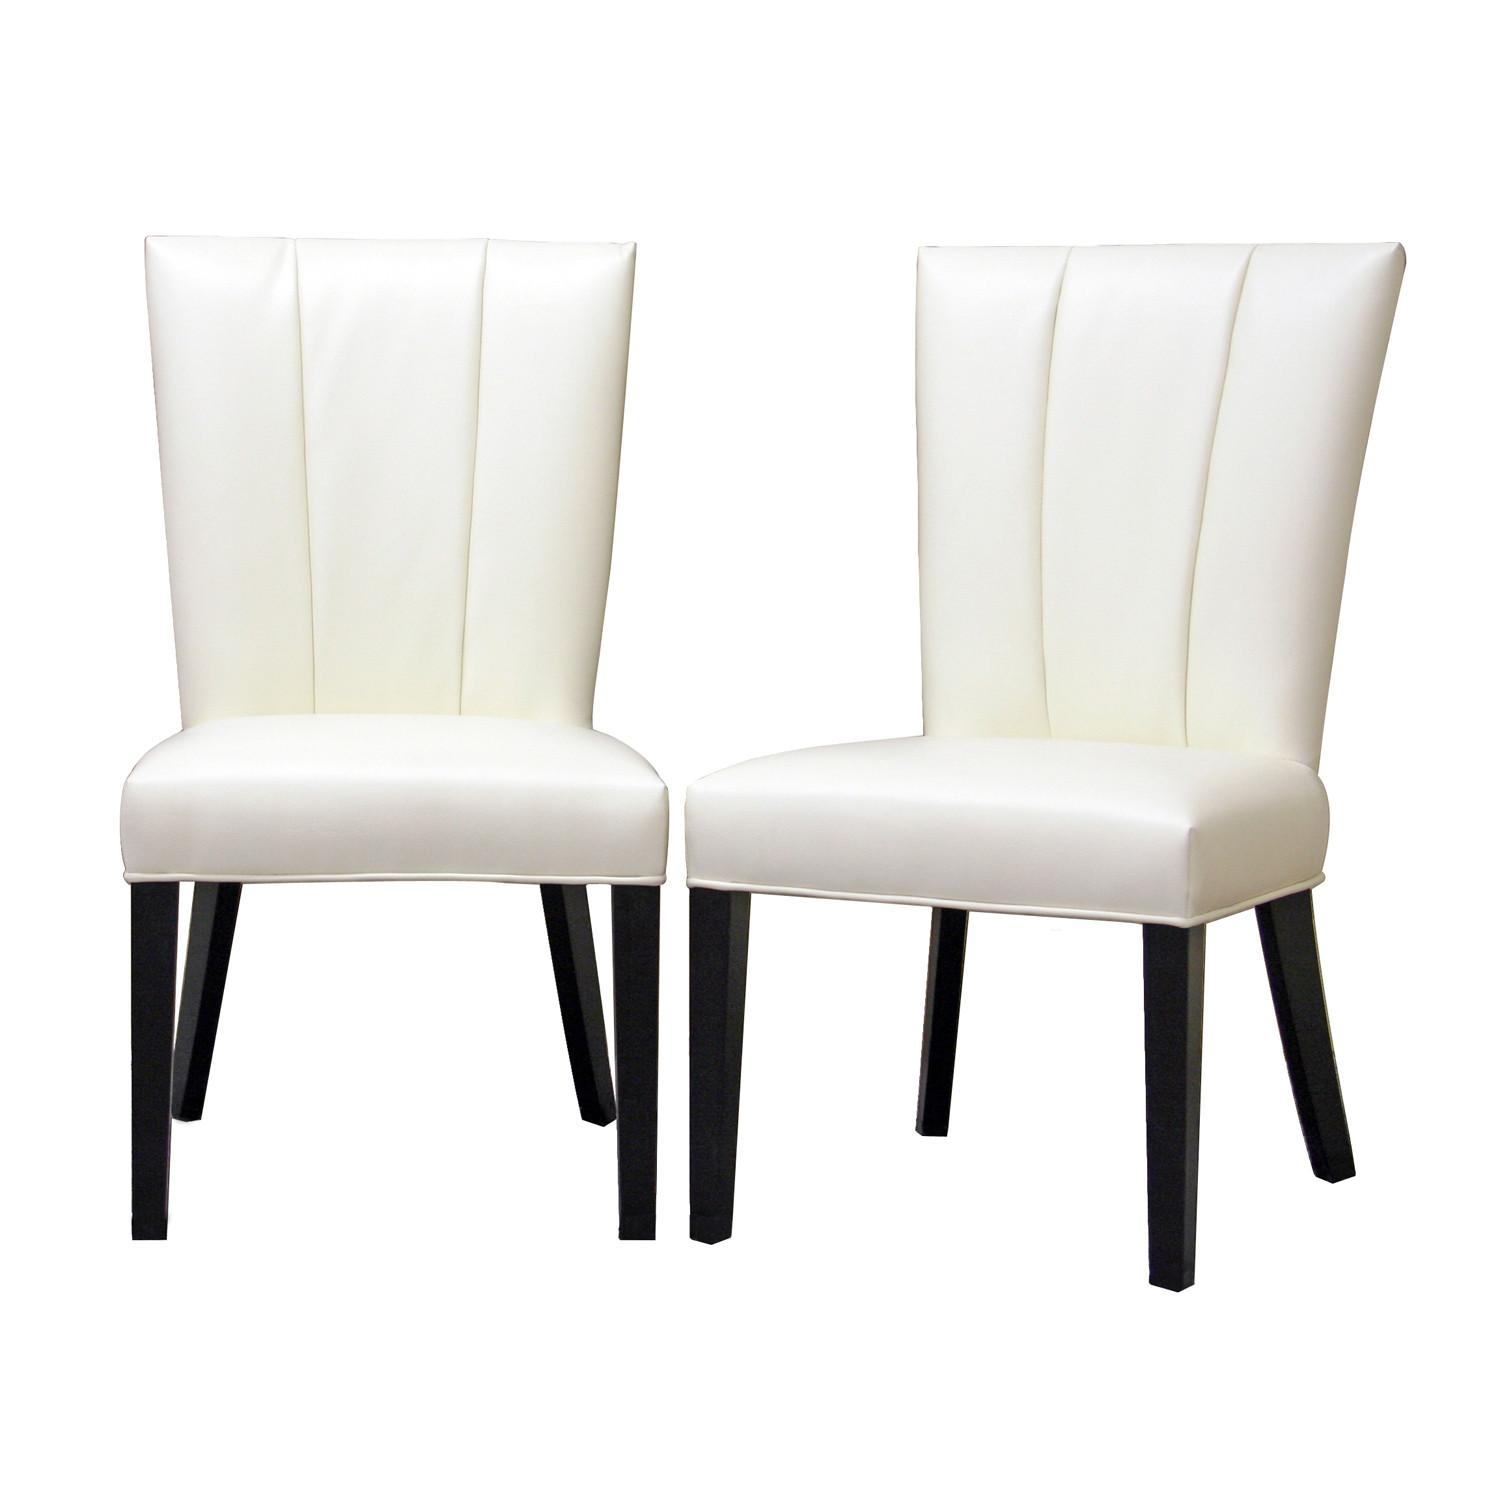 Modern Comfortable Dining Chairs Best Home Design 2018